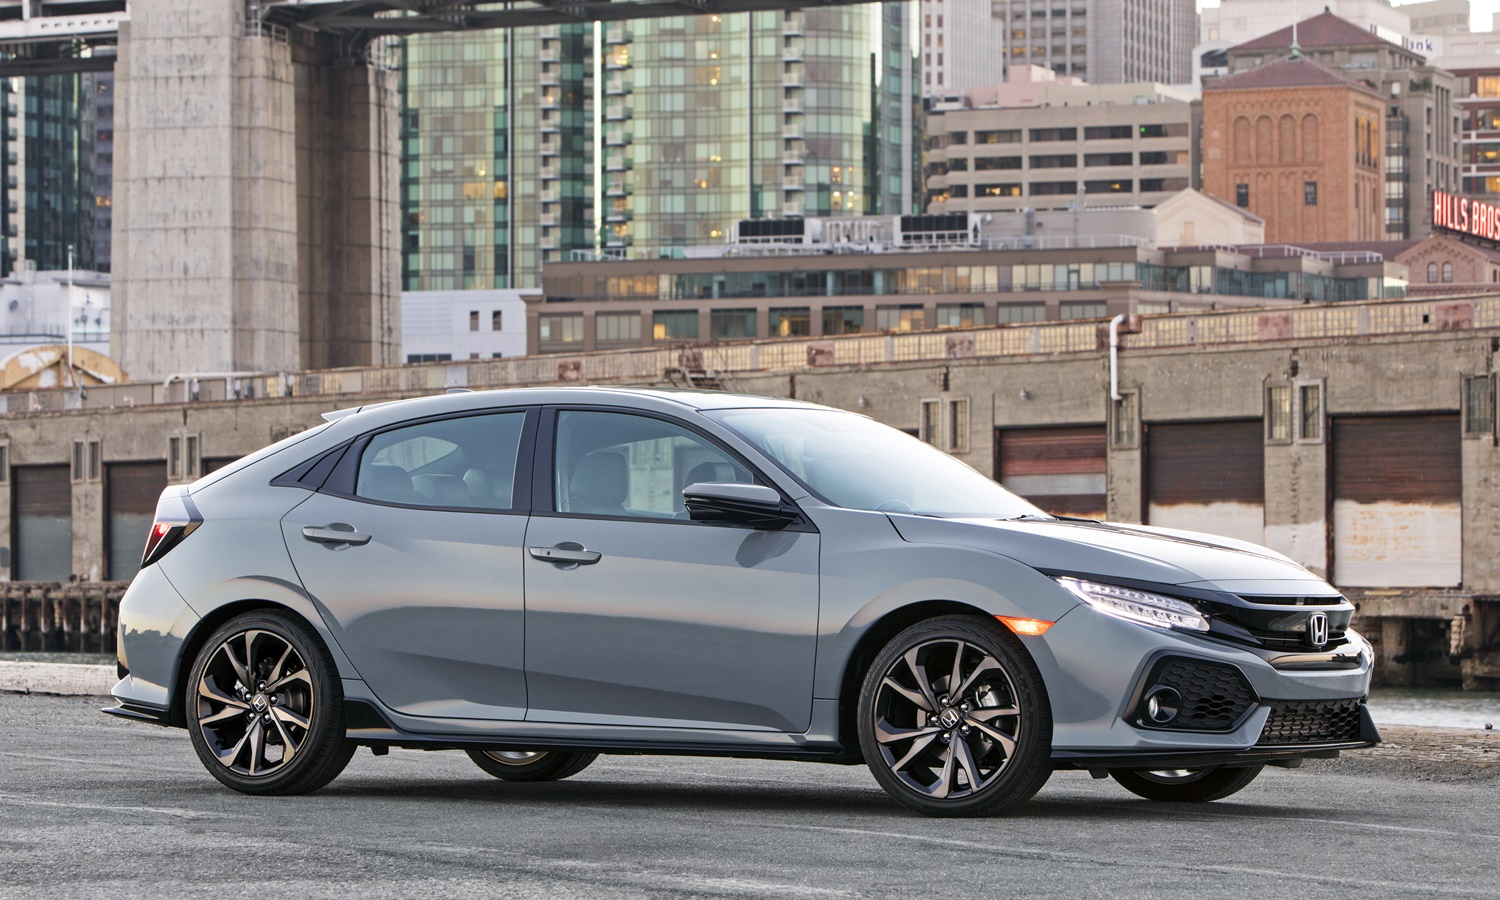 Toyota Corolla Hatchback Photos: Honda Civic front quarter view